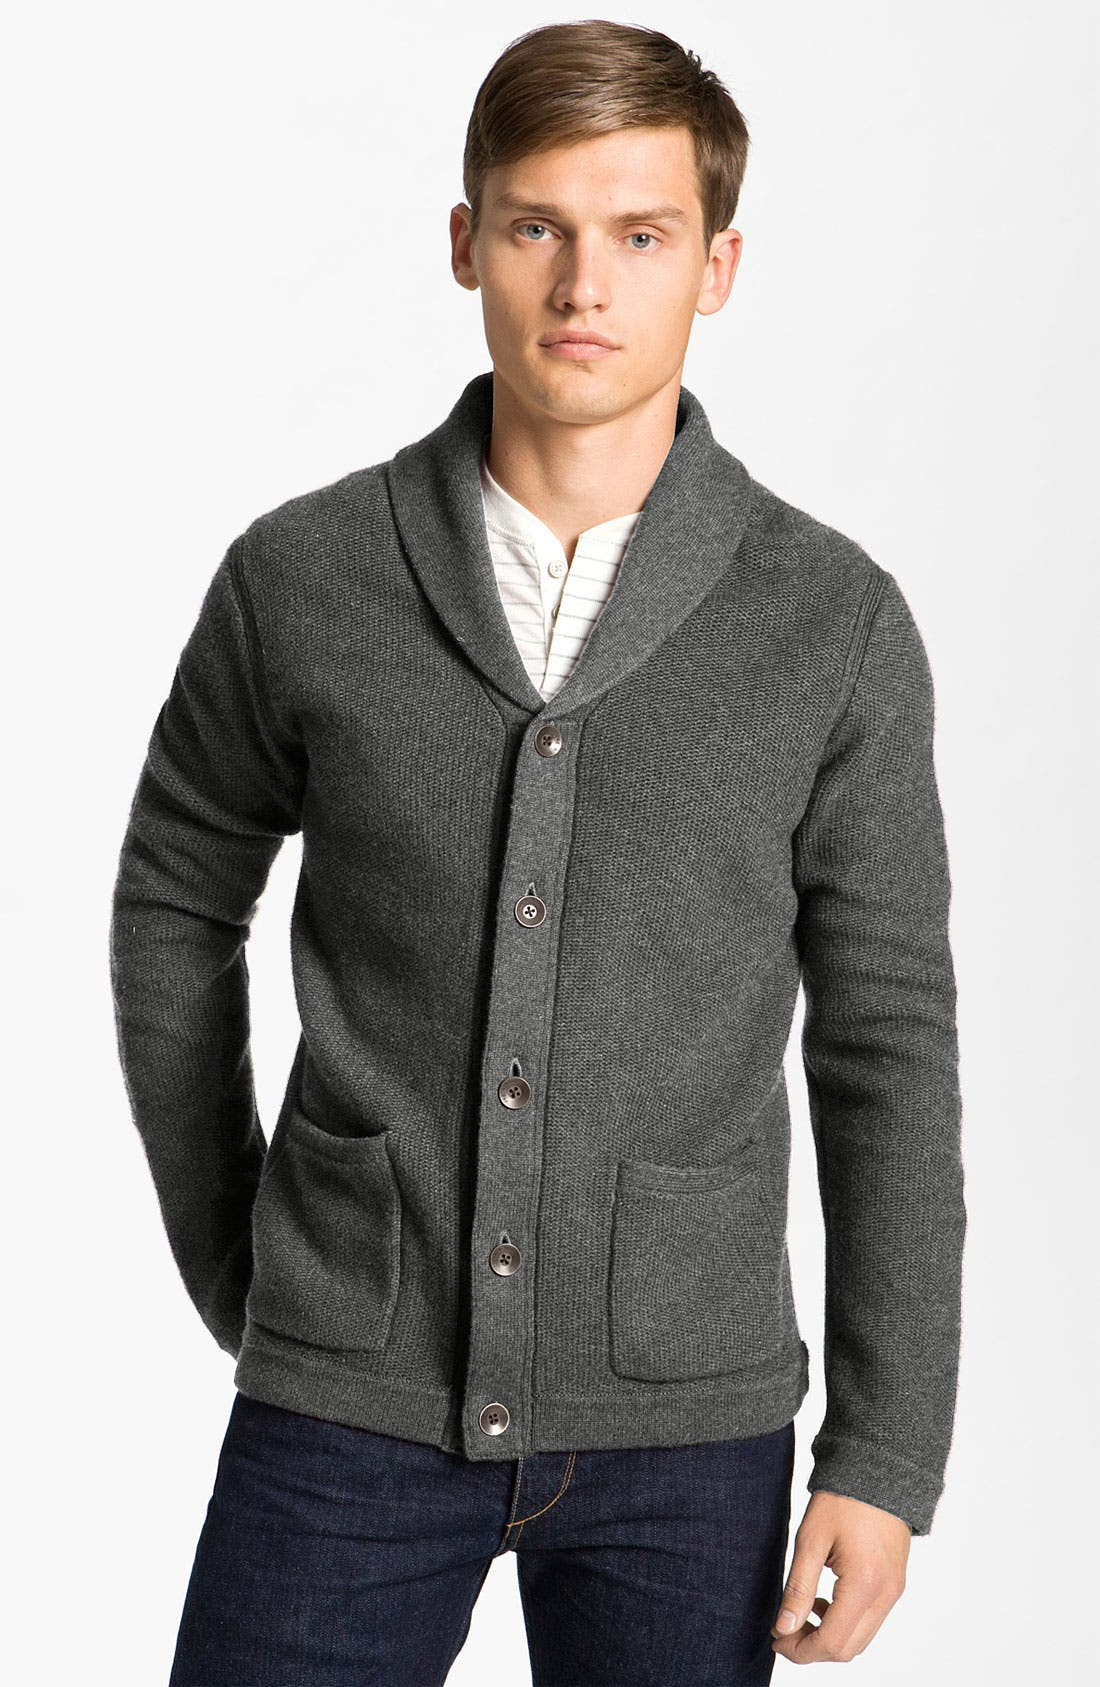 Main Image - rag & bone 'Avery' Shawl Collar Cardigan